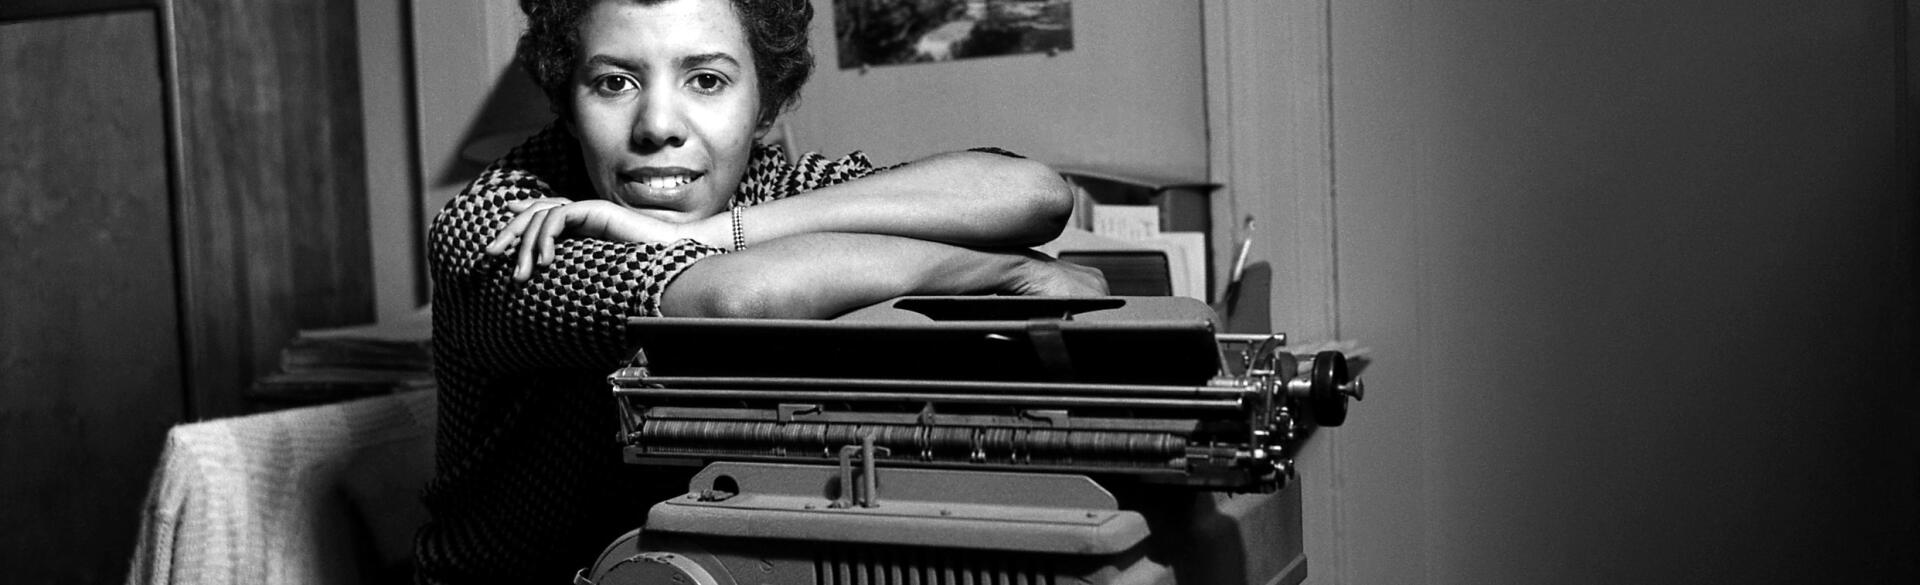 Black and white photo of Lorraine Hansberry leaning on a typewriter.